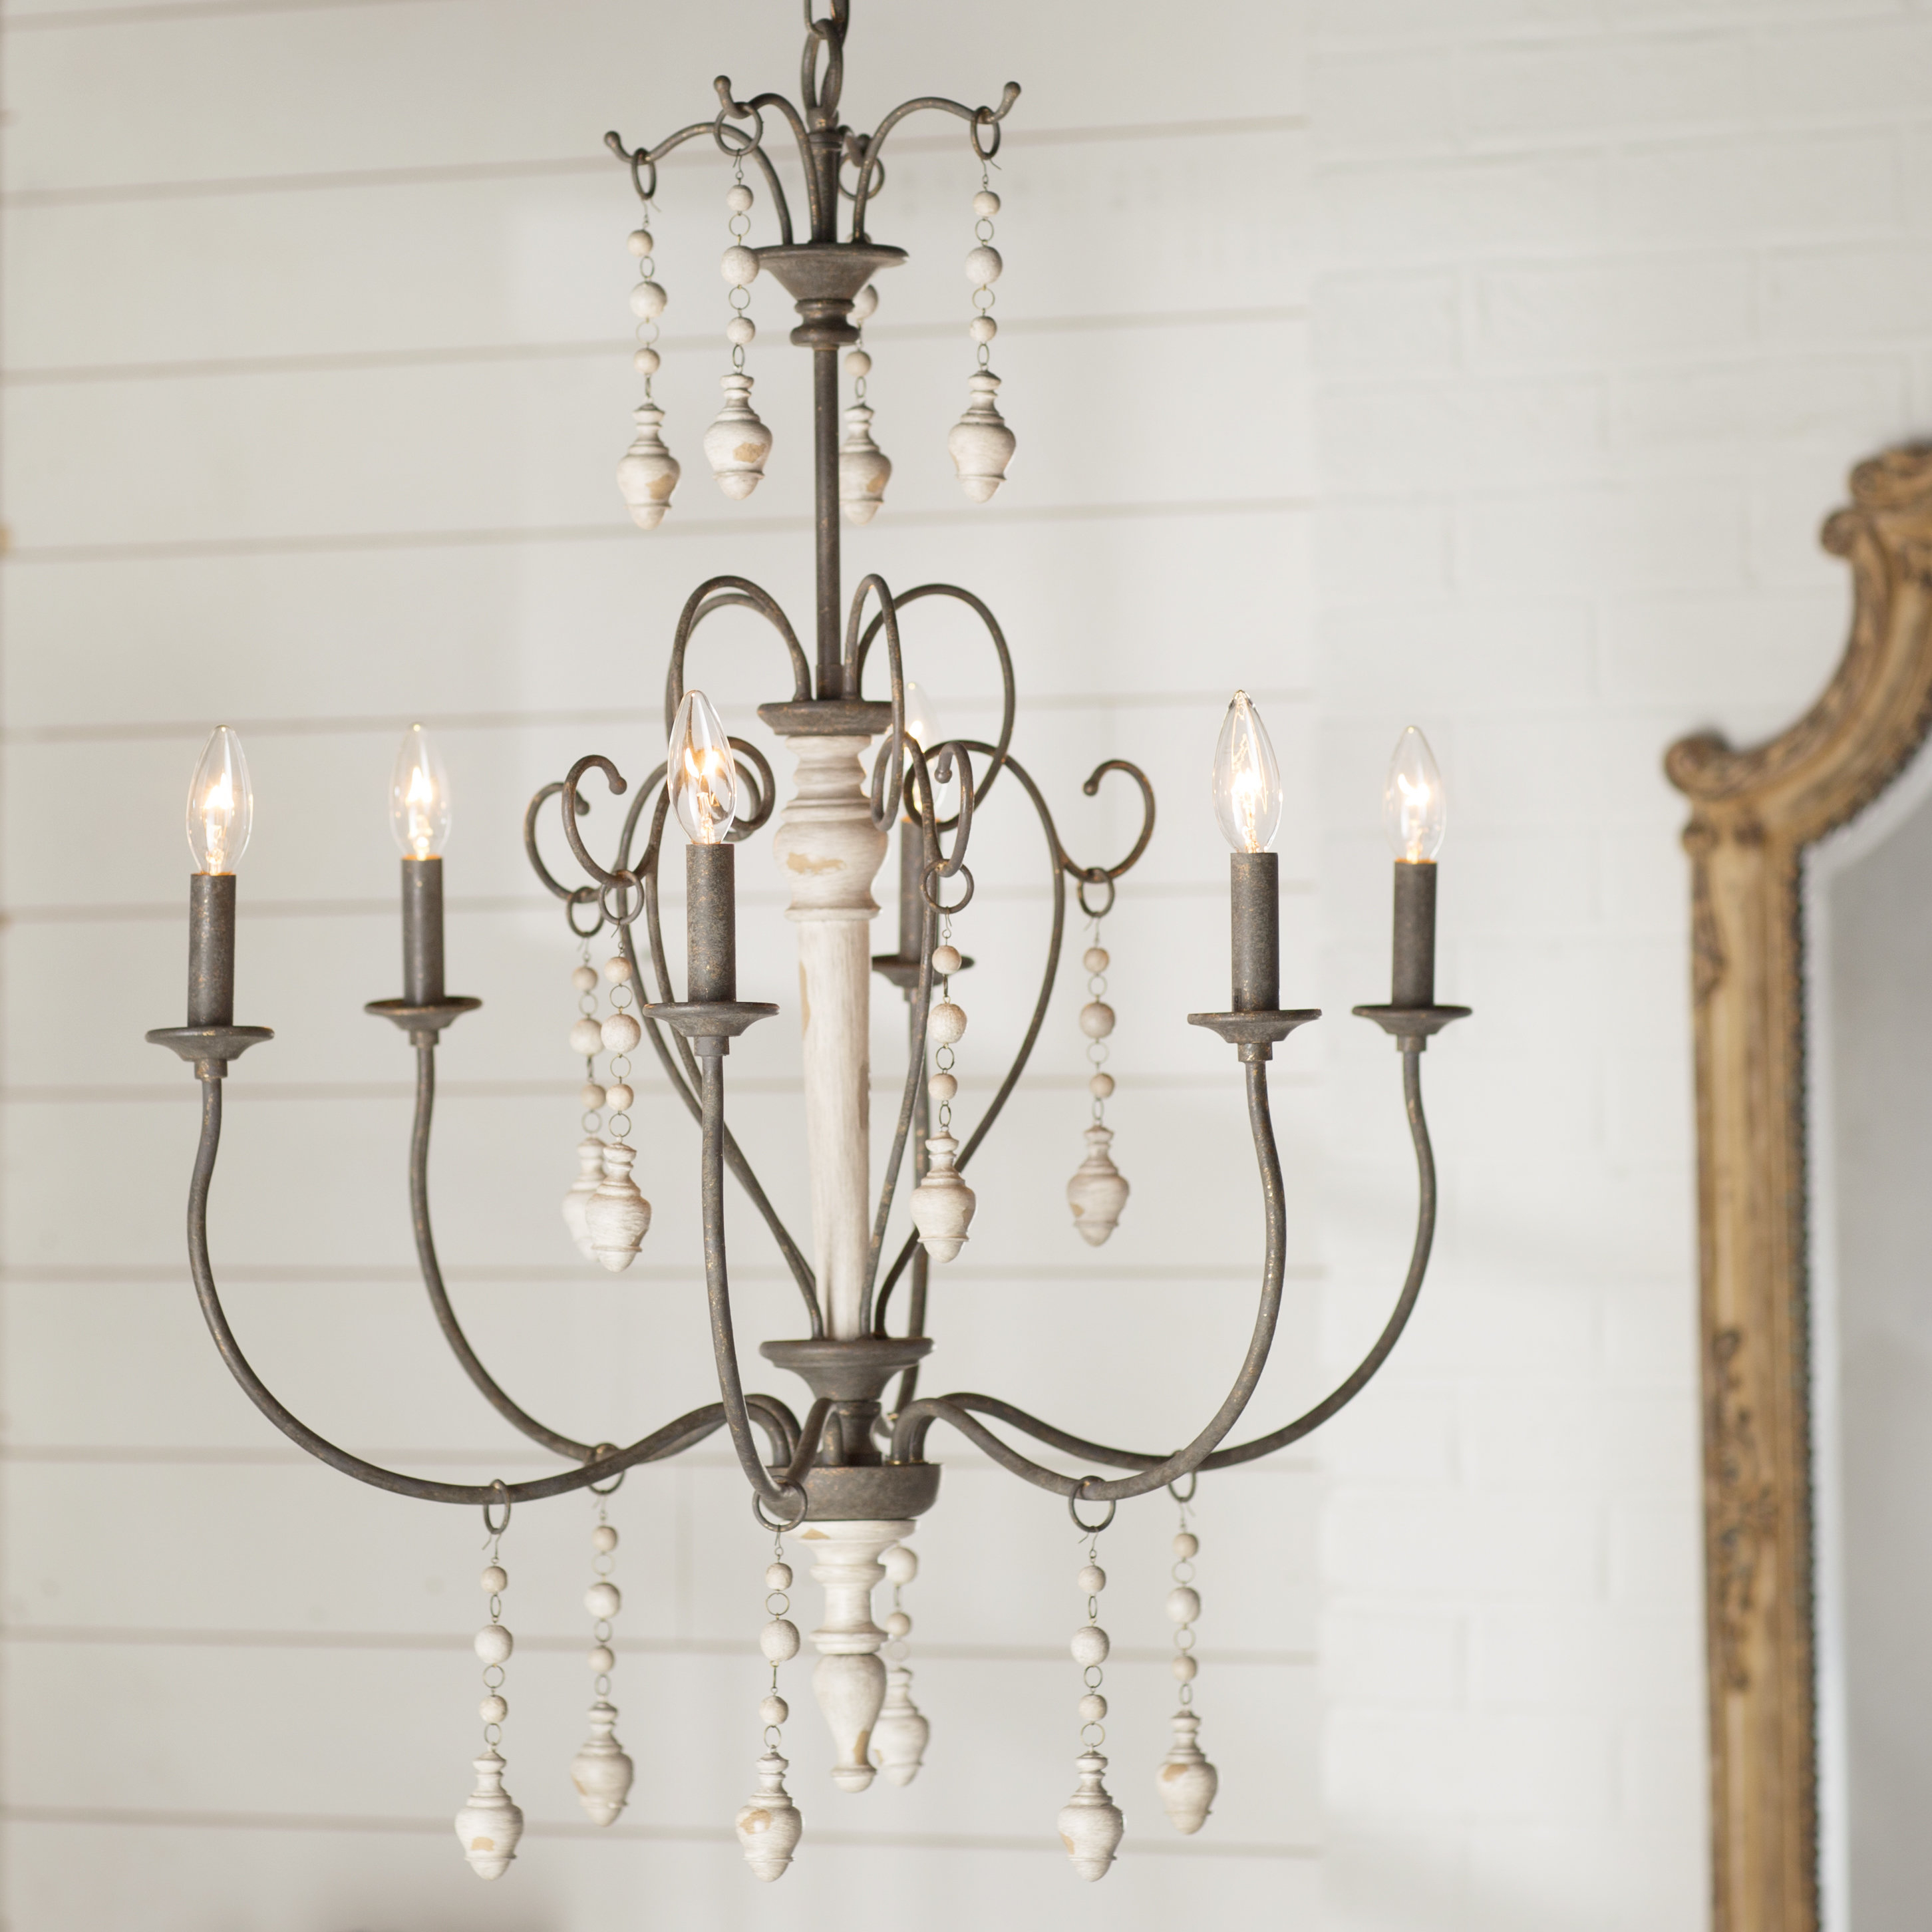 Bouchette Traditional 6-Light Candle Style Chandeliers with regard to 2019 Bouchette Traditional 6-Light Candle Style Chandelier